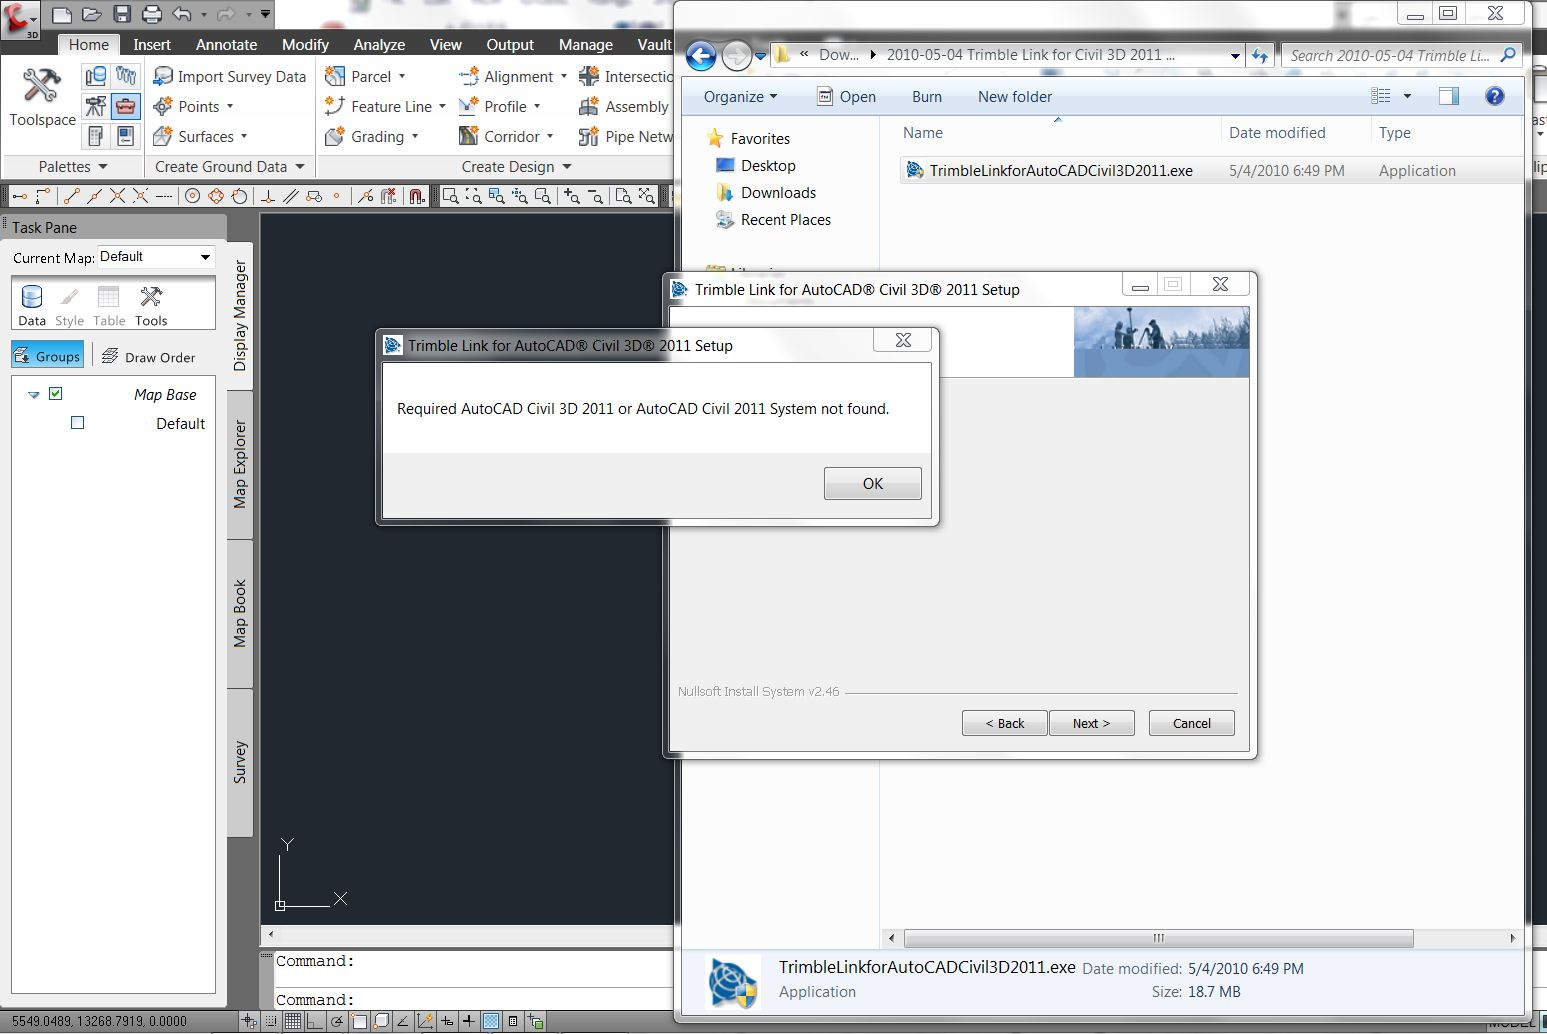 Trimble Link C3D2011 Install Problem - Page 2 - Autodesk Community